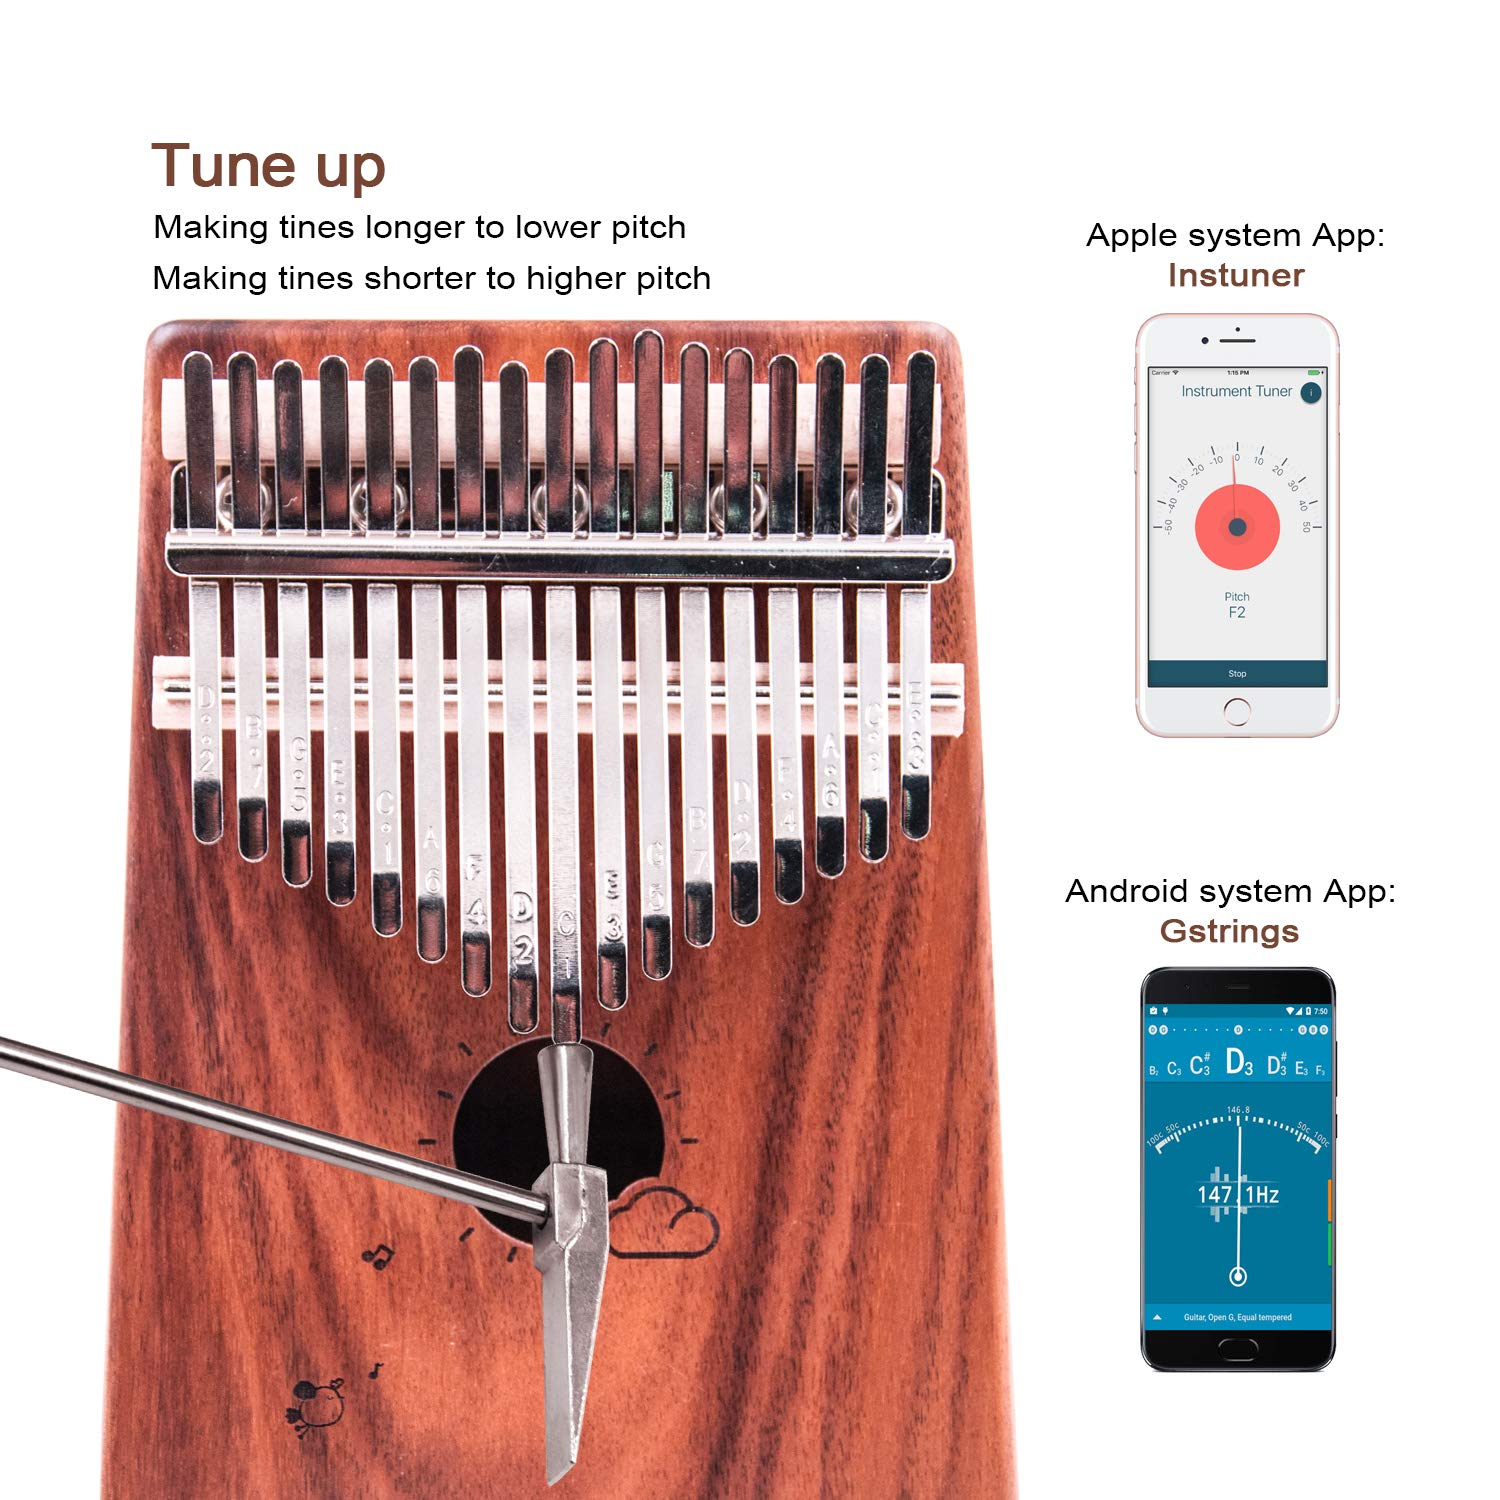 Kalimba 17 Keys Thumb Piano Solid Wood Finger Piano Musical Instrument with Study Instruction,Tuning Hammer,Gift for Kids Adult Beginners Professional without any musical basis(Dark Brown) by Tripolar (Image #6)